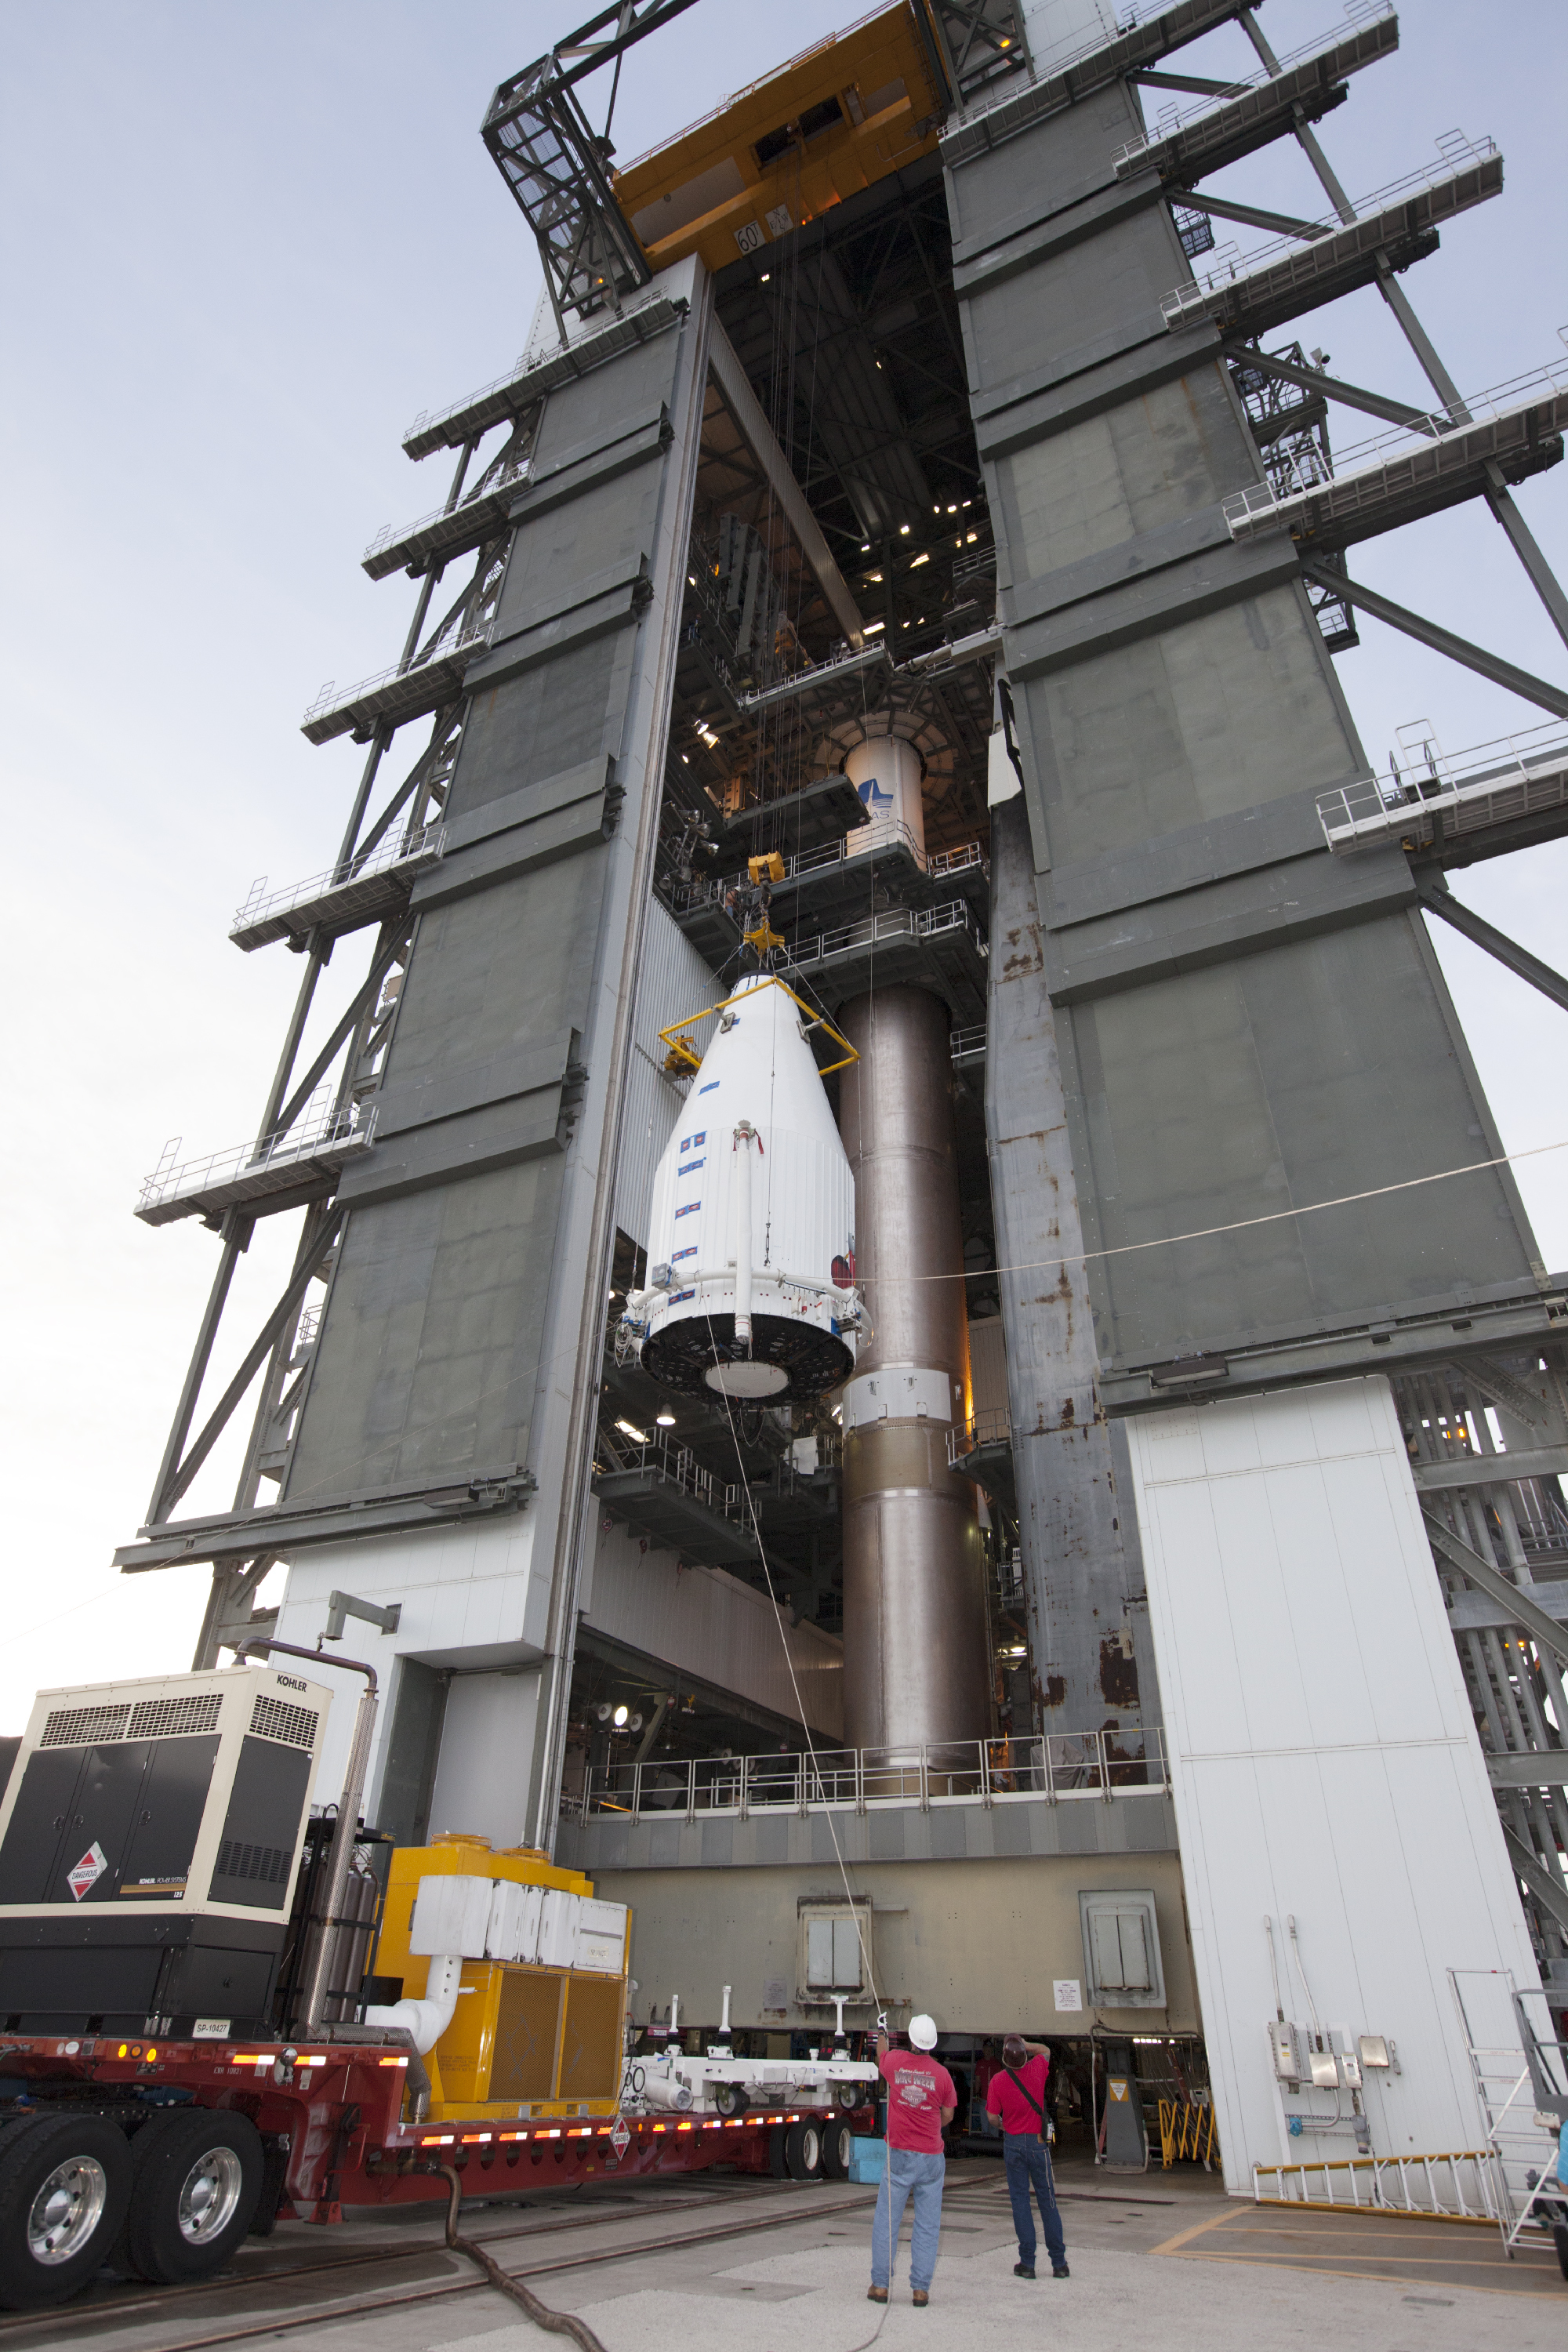 MAVEN Hoisted Atop Atlas V Rocket